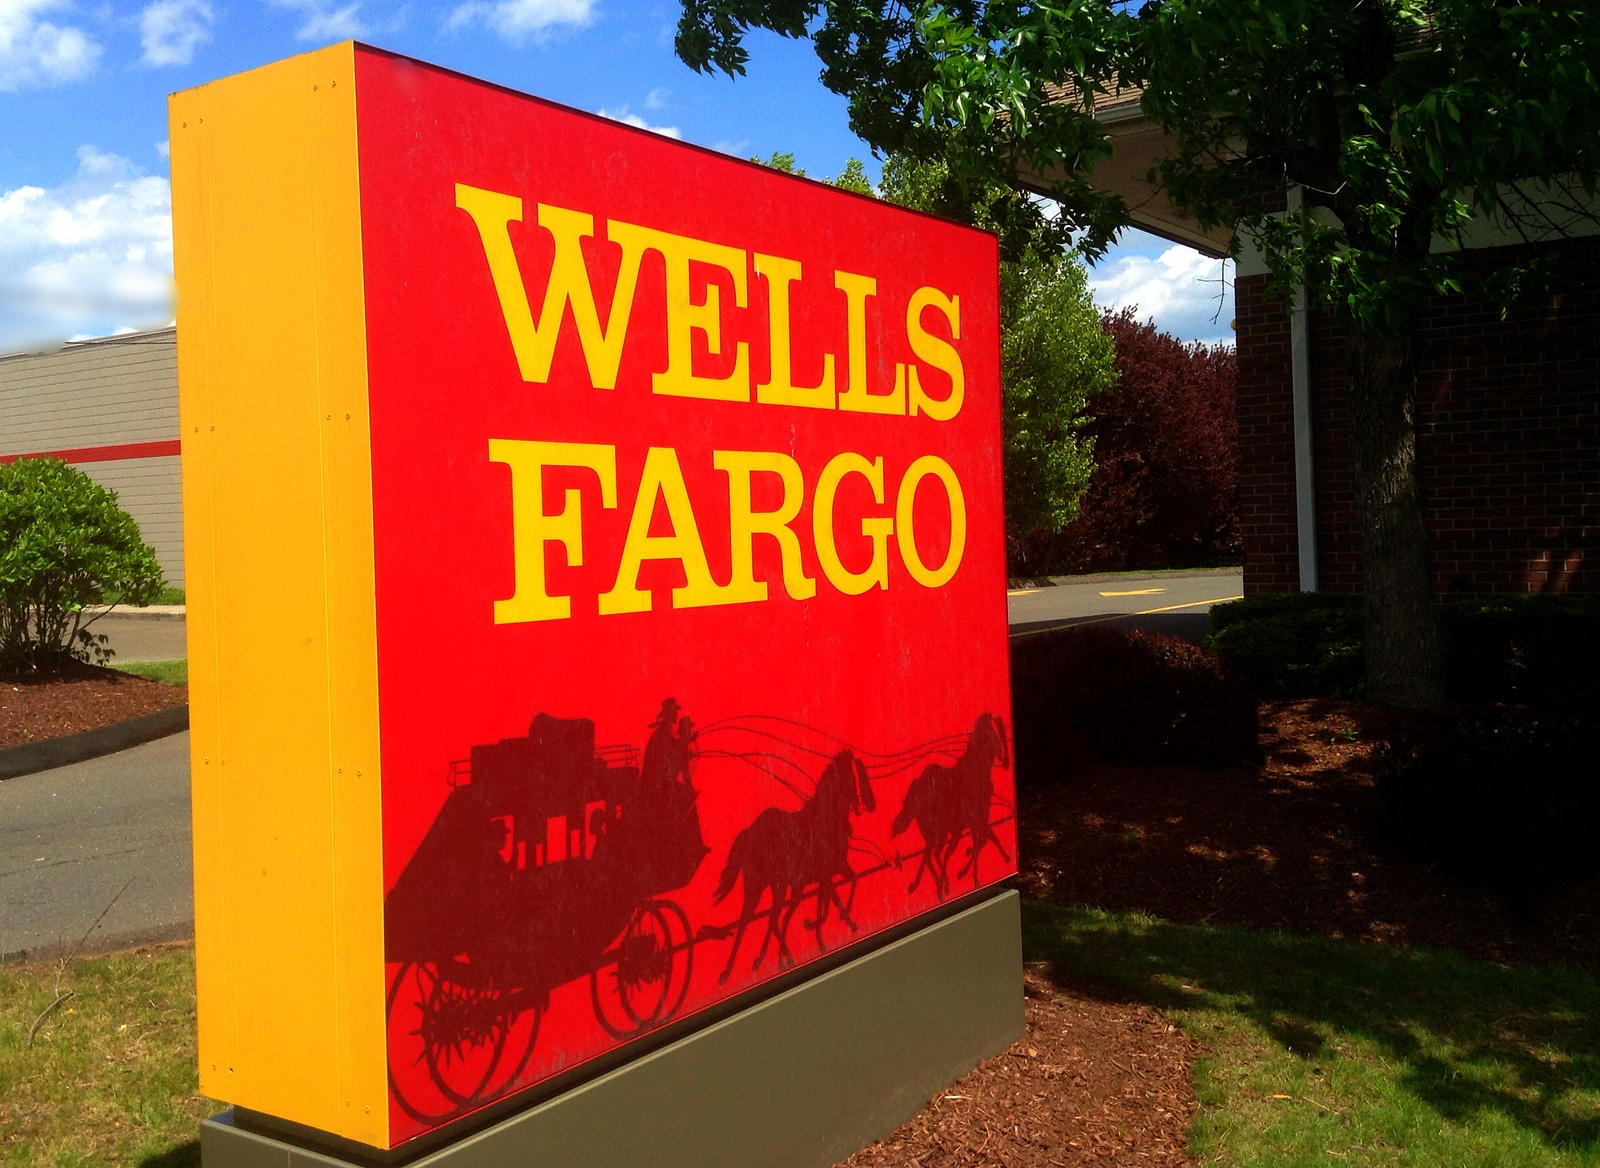 Getting up to speed on the Wells Fargo sales scandal